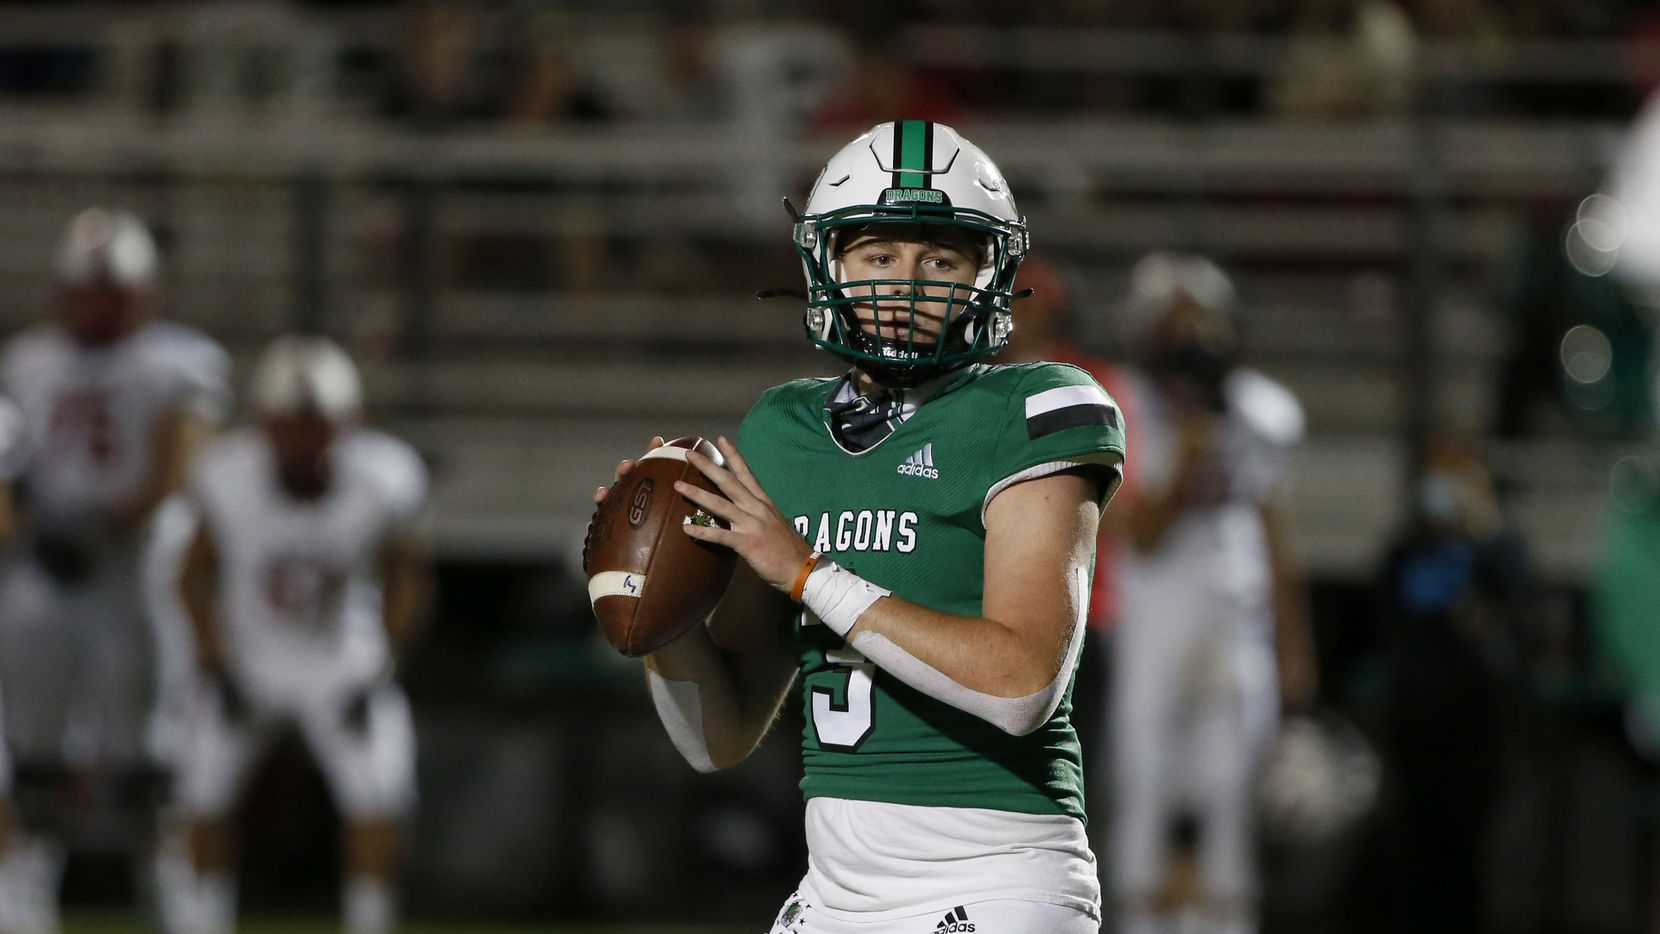 Southlake Carroll quarterback Quinn Ewers (3) looks to pass against Rockwall Heath during their high school football gam in Southlake, Texas, on Oct. 2, 2020. (Michael Ainsworth/Special Contributor)